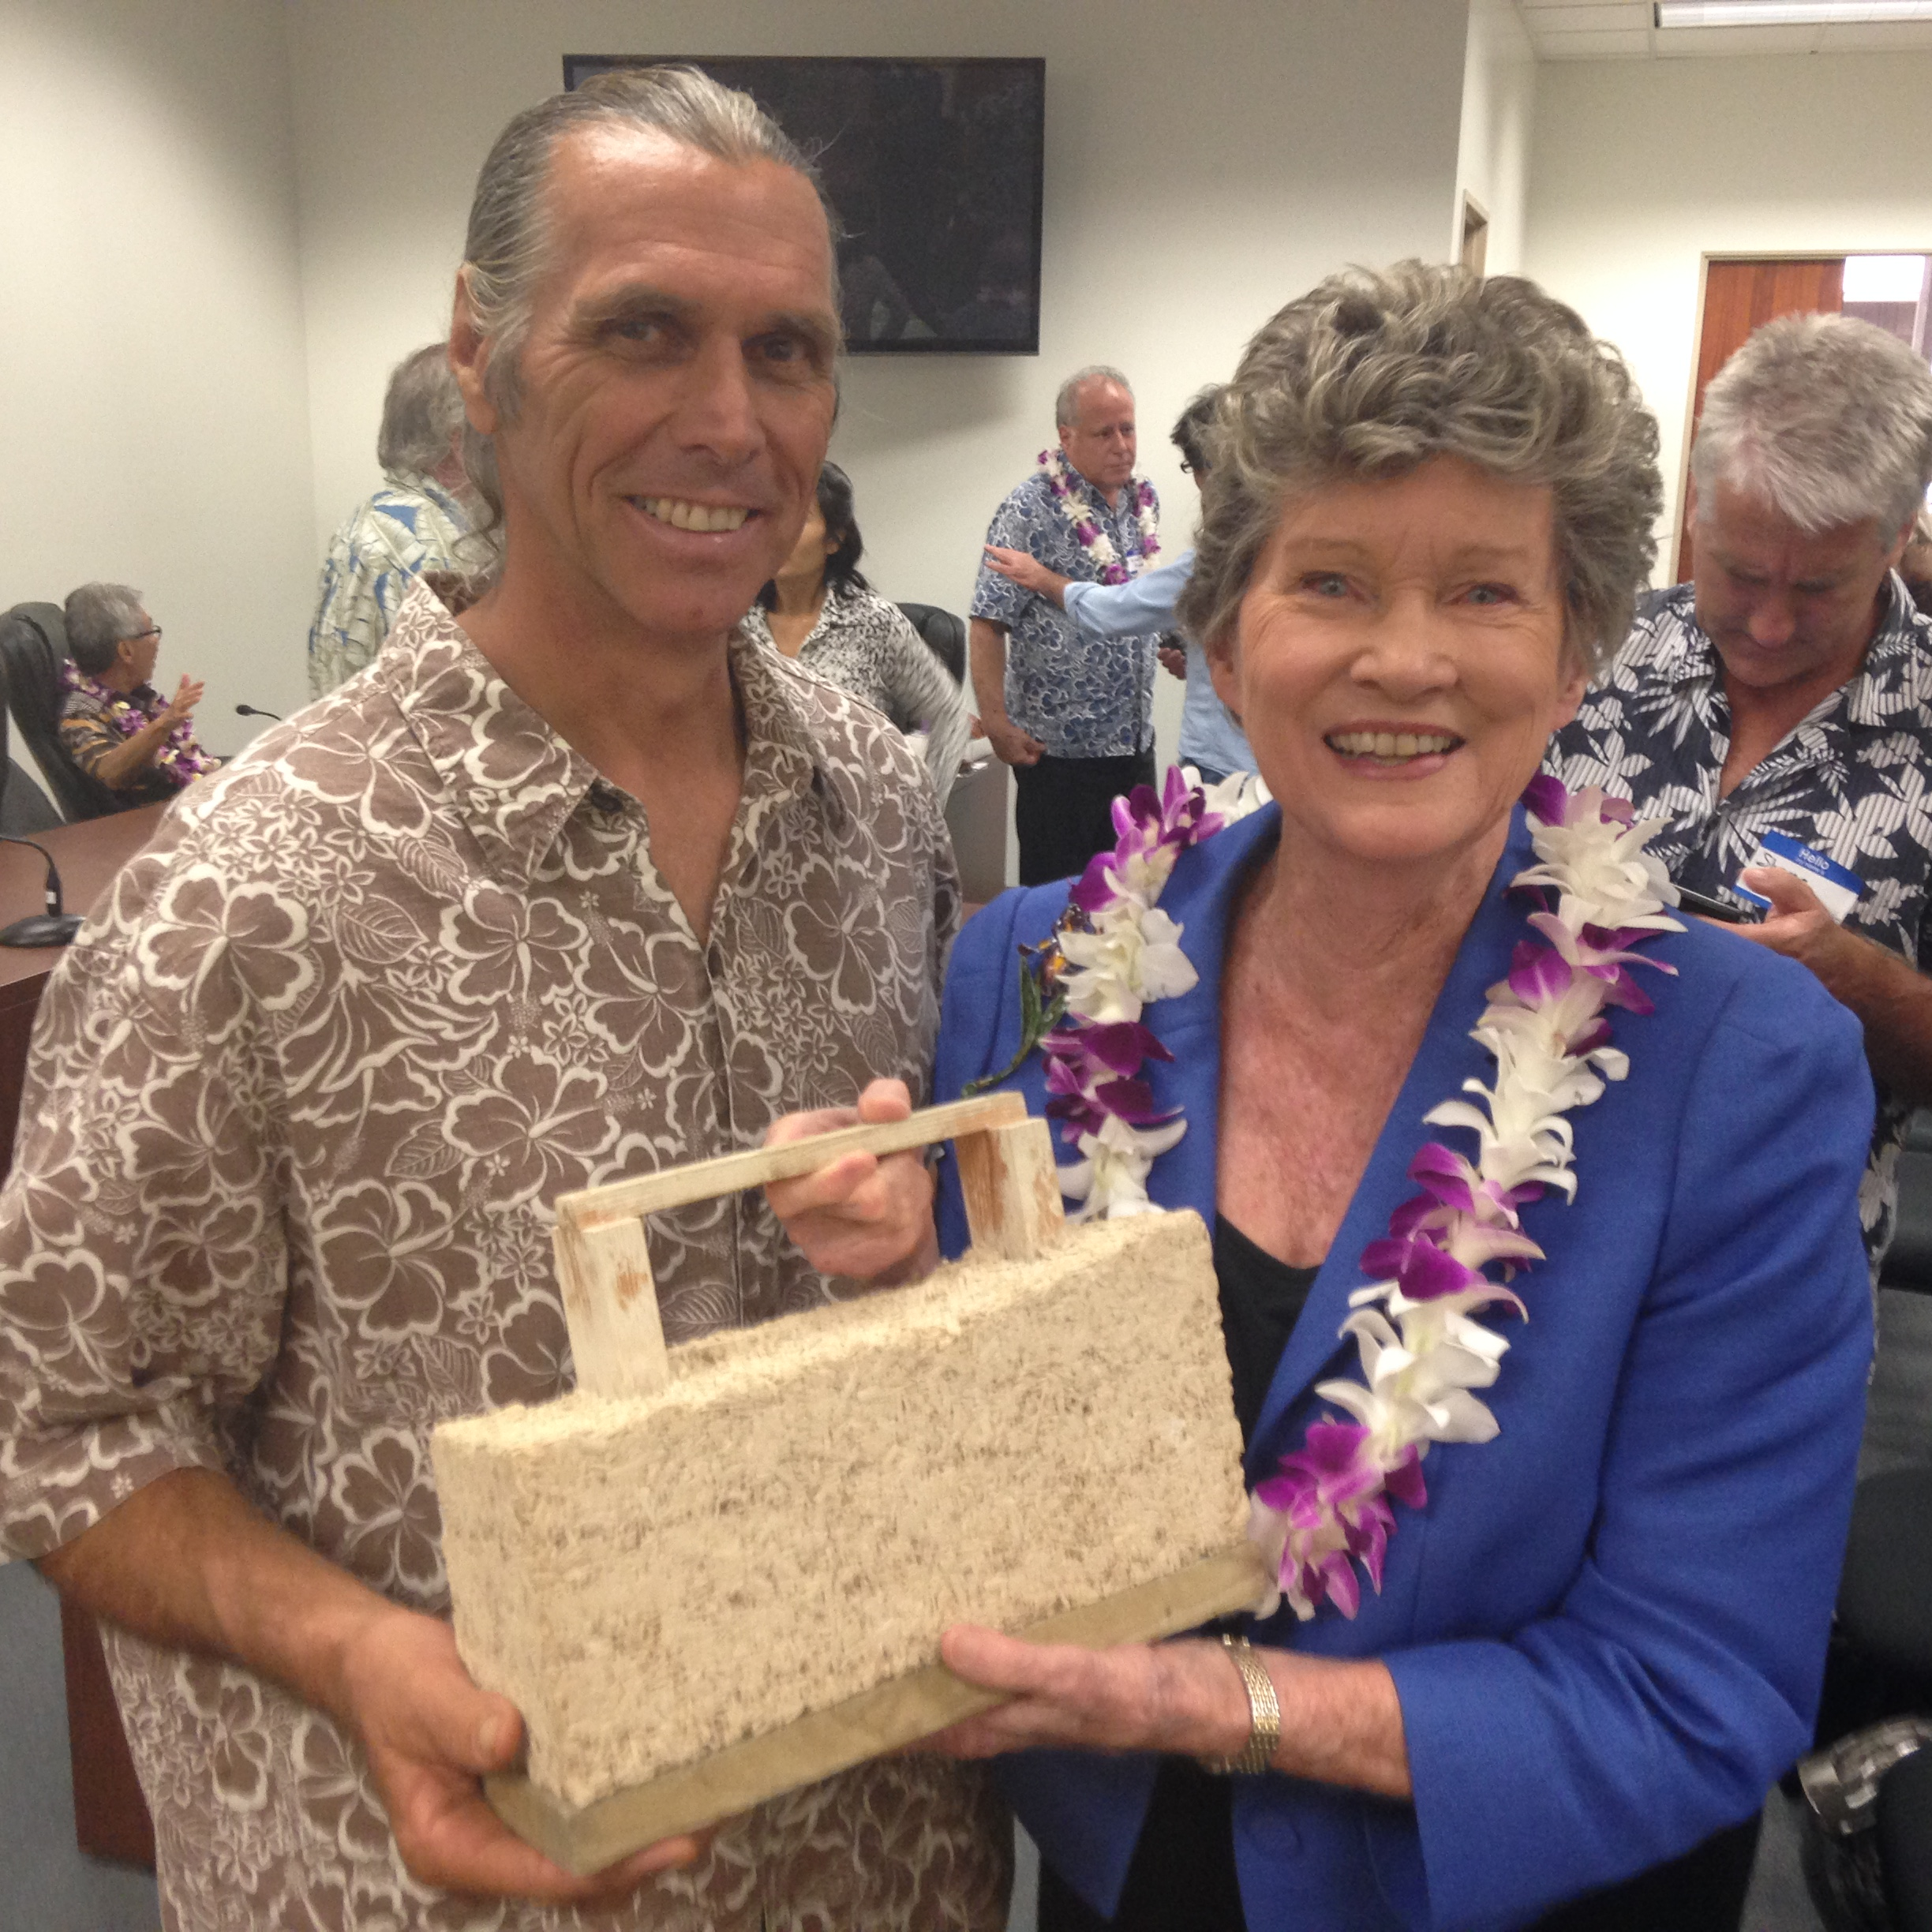 With Hawaii State Representative Cynthia Theilen, a leader in the governments effort to legalize hemp production.